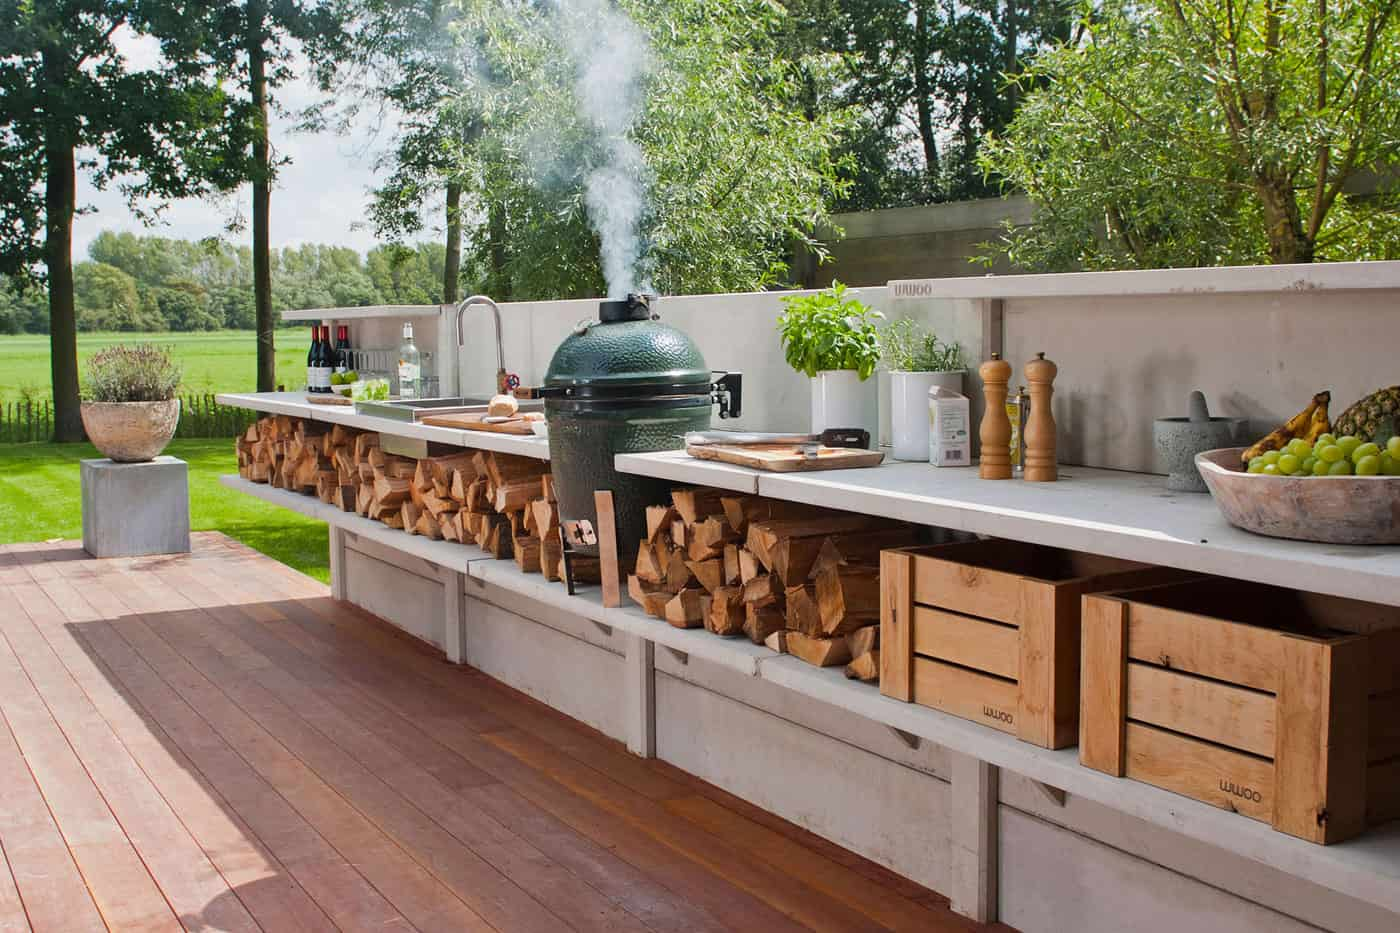 15 outdoor kitchen designs that you can help diy diy modular outdoor kitchen solutioingenieria Gallery